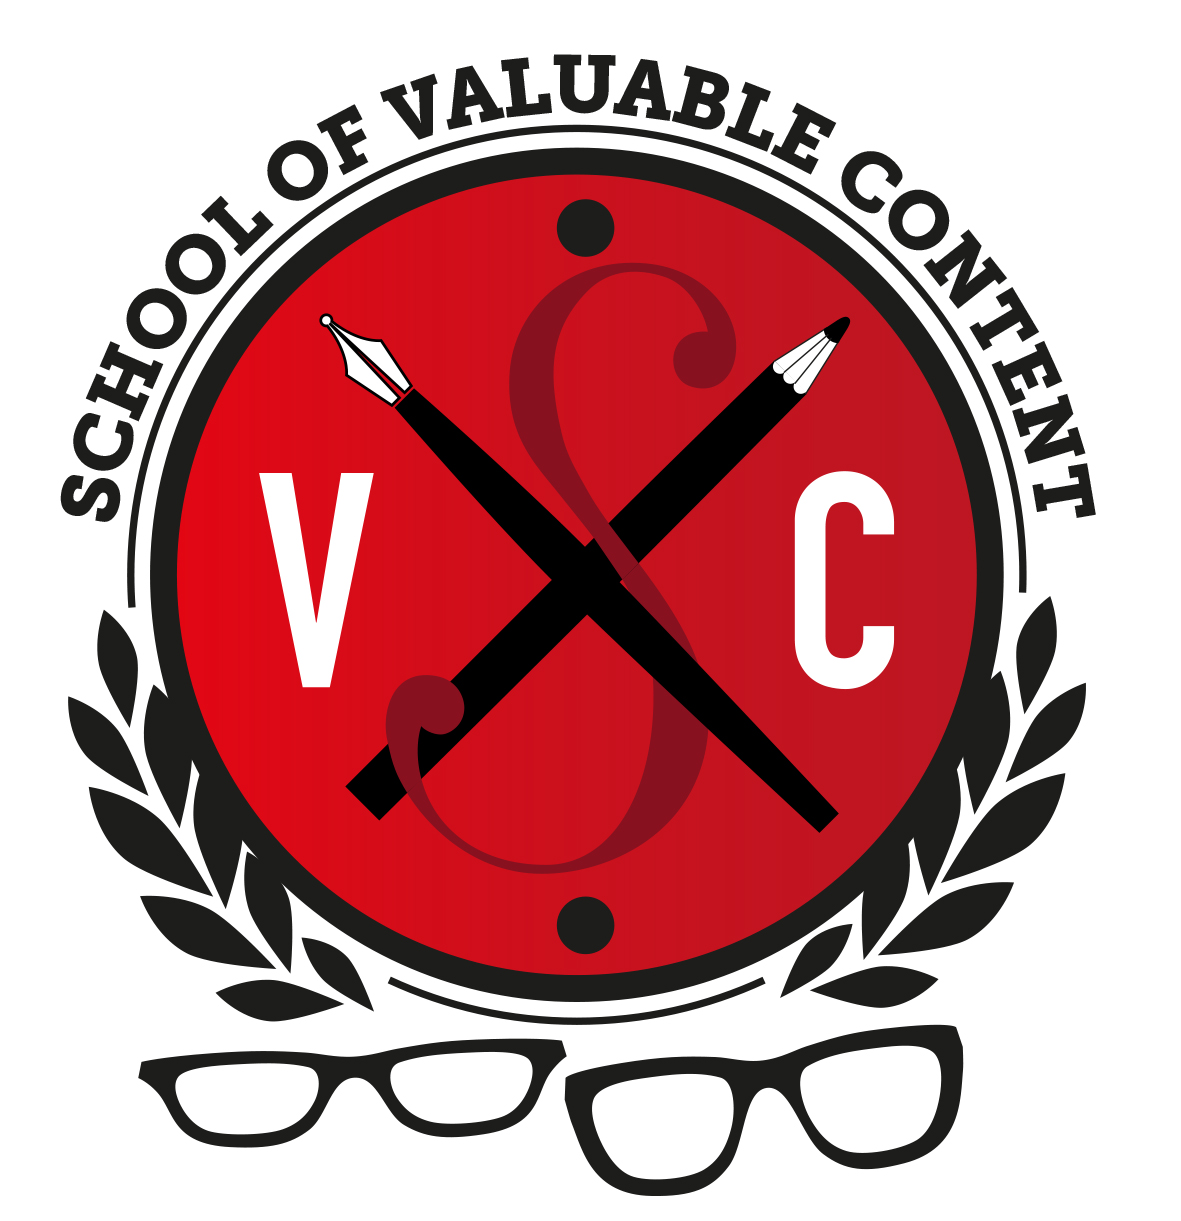 School of Valuable Content school crest